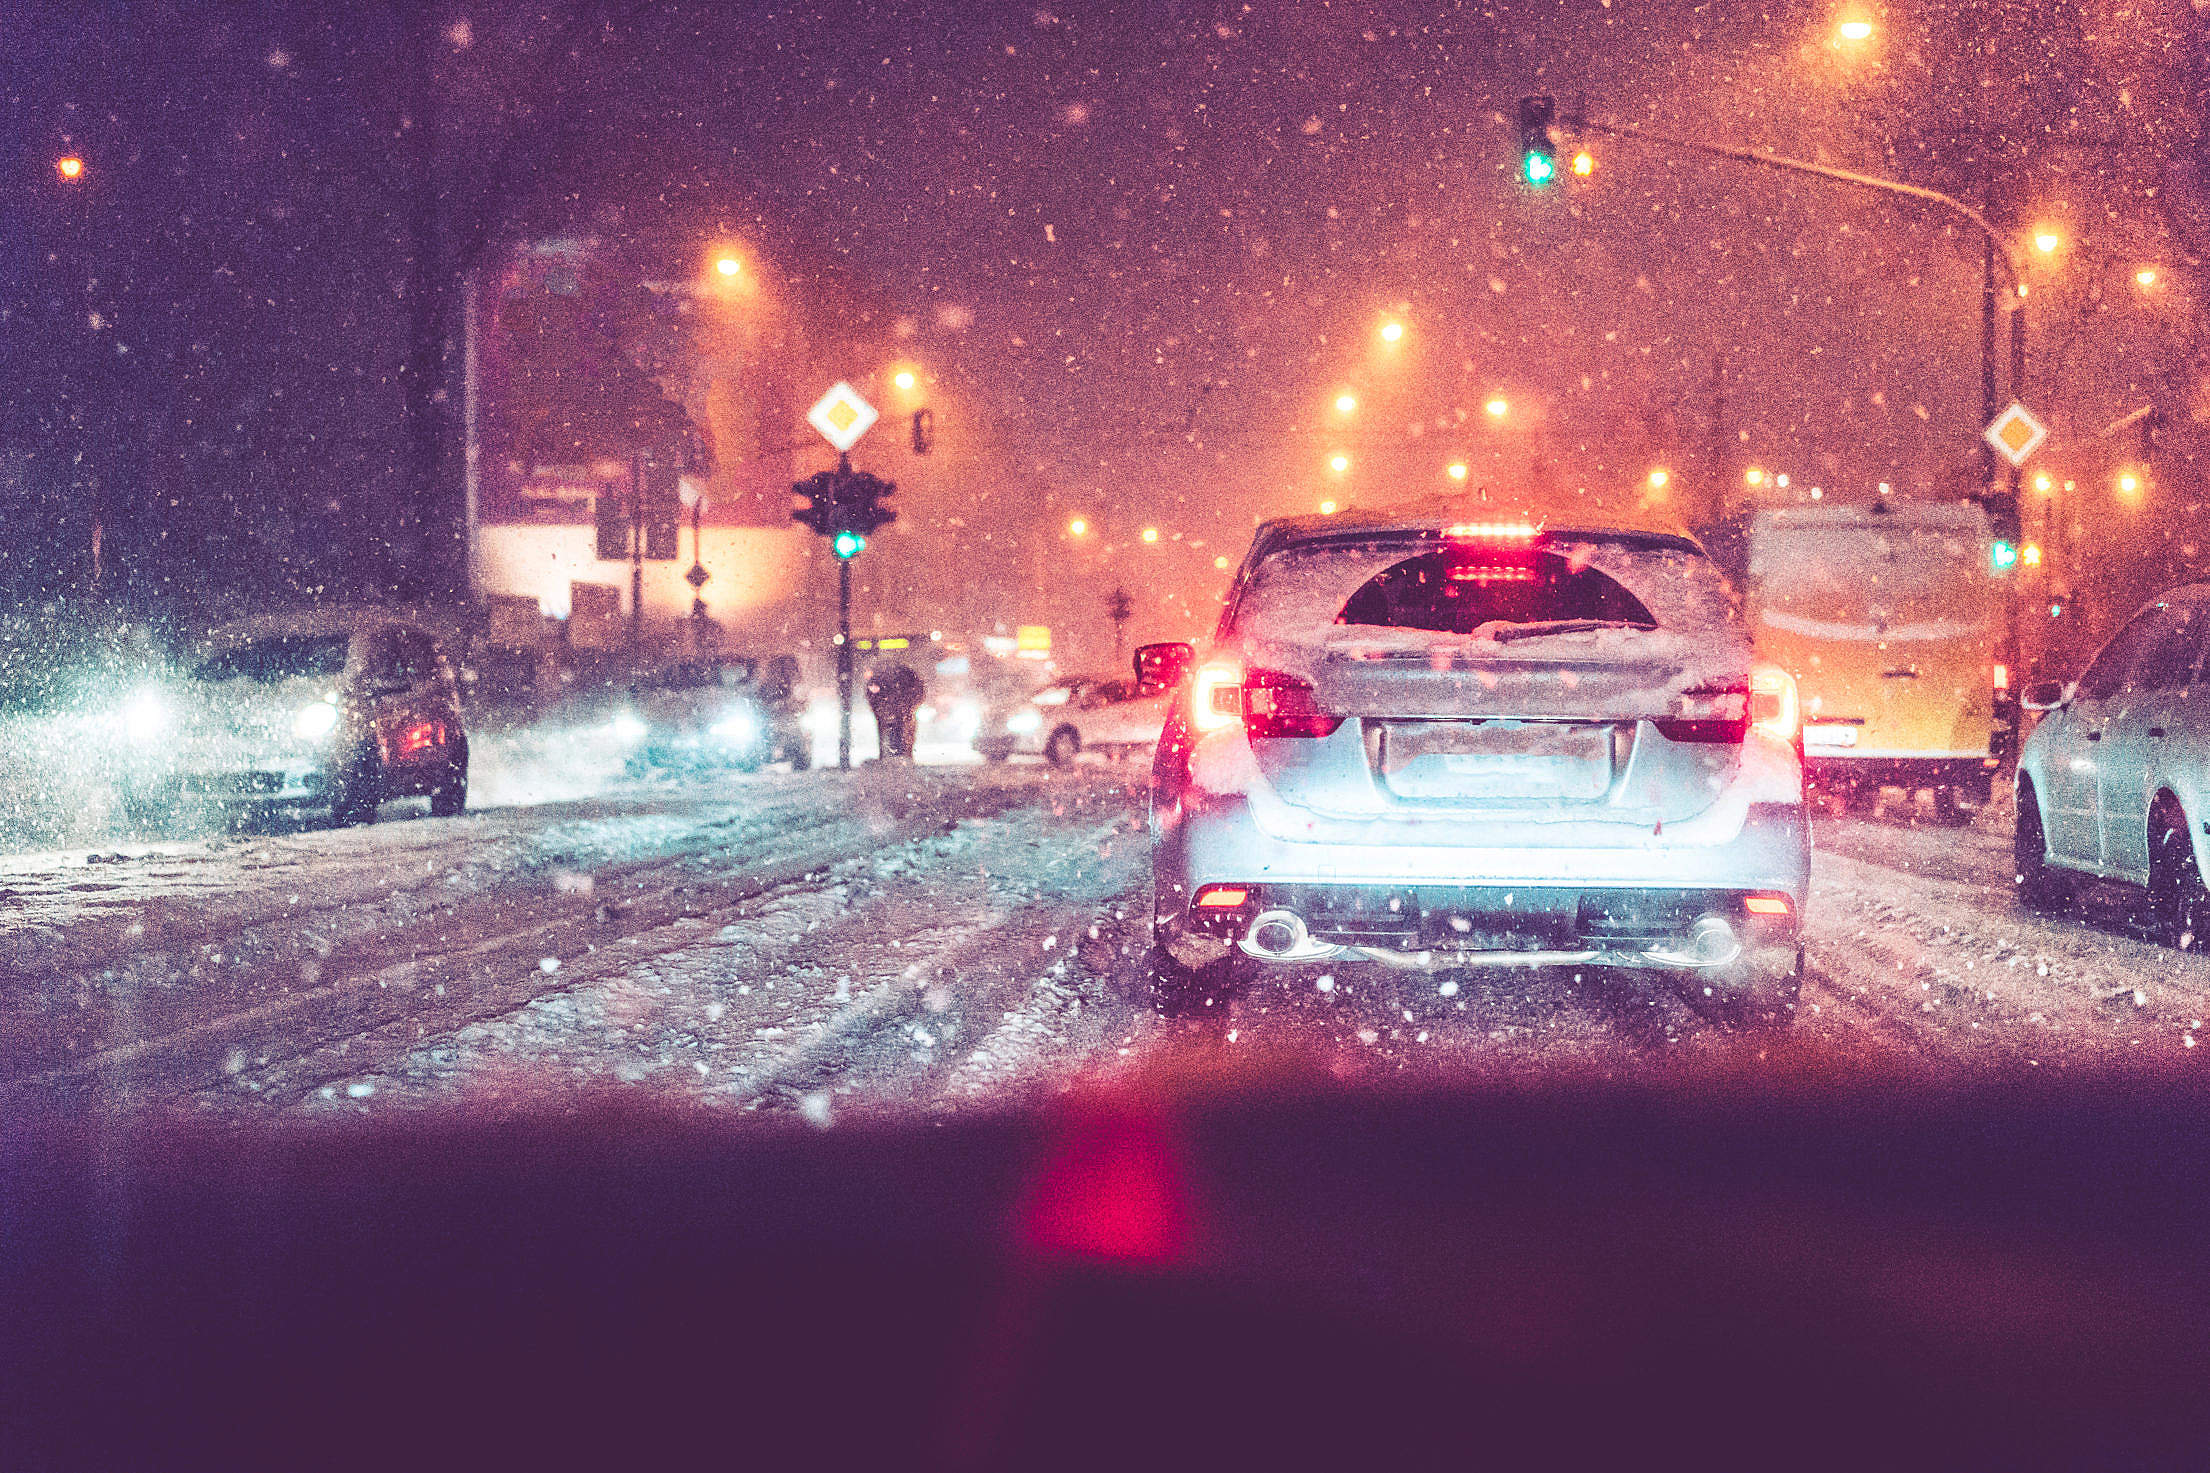 Driving in Evening Traffic Jam and Snow Calamity Weather Free Stock Photo